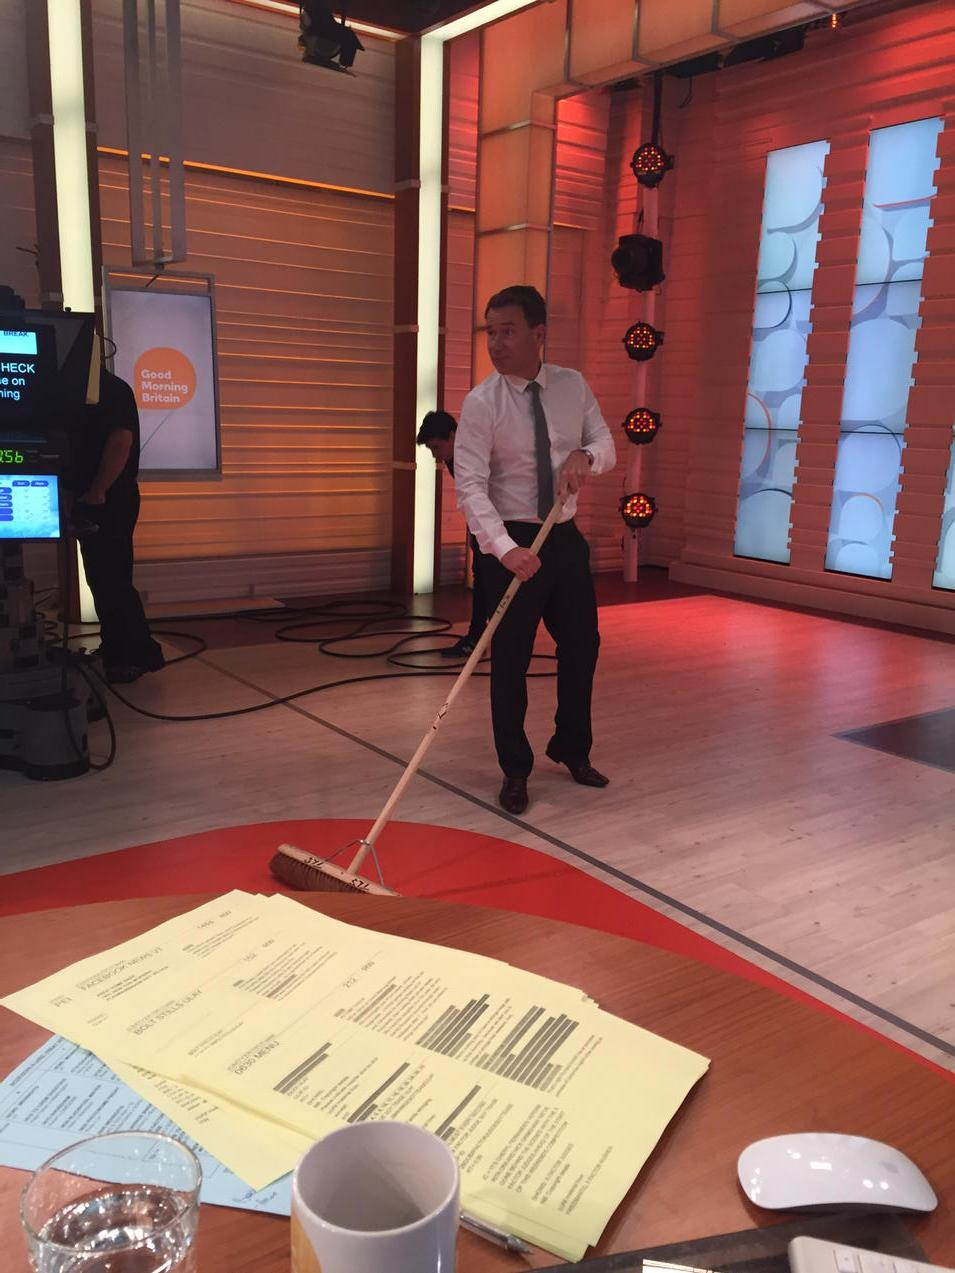 We've finally put @RichardAArnold to good use! Sweeping up the @GMB studio - u missed a bit! http://t.co/SOGW2kZFbl